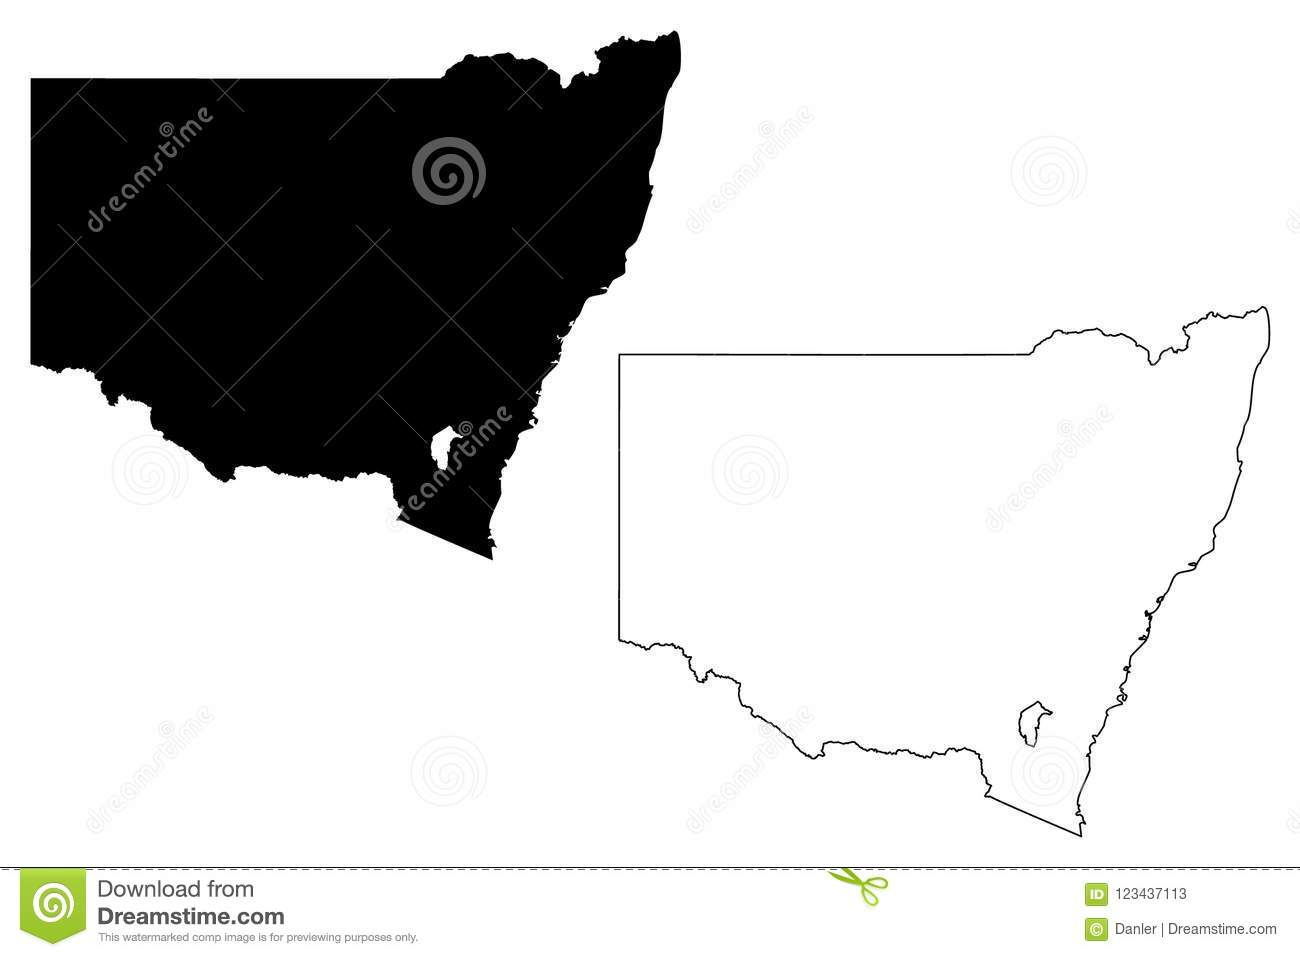 Australia Map States And Territories.New South Wales Map Vector Stock Vector Illustration Of Outline